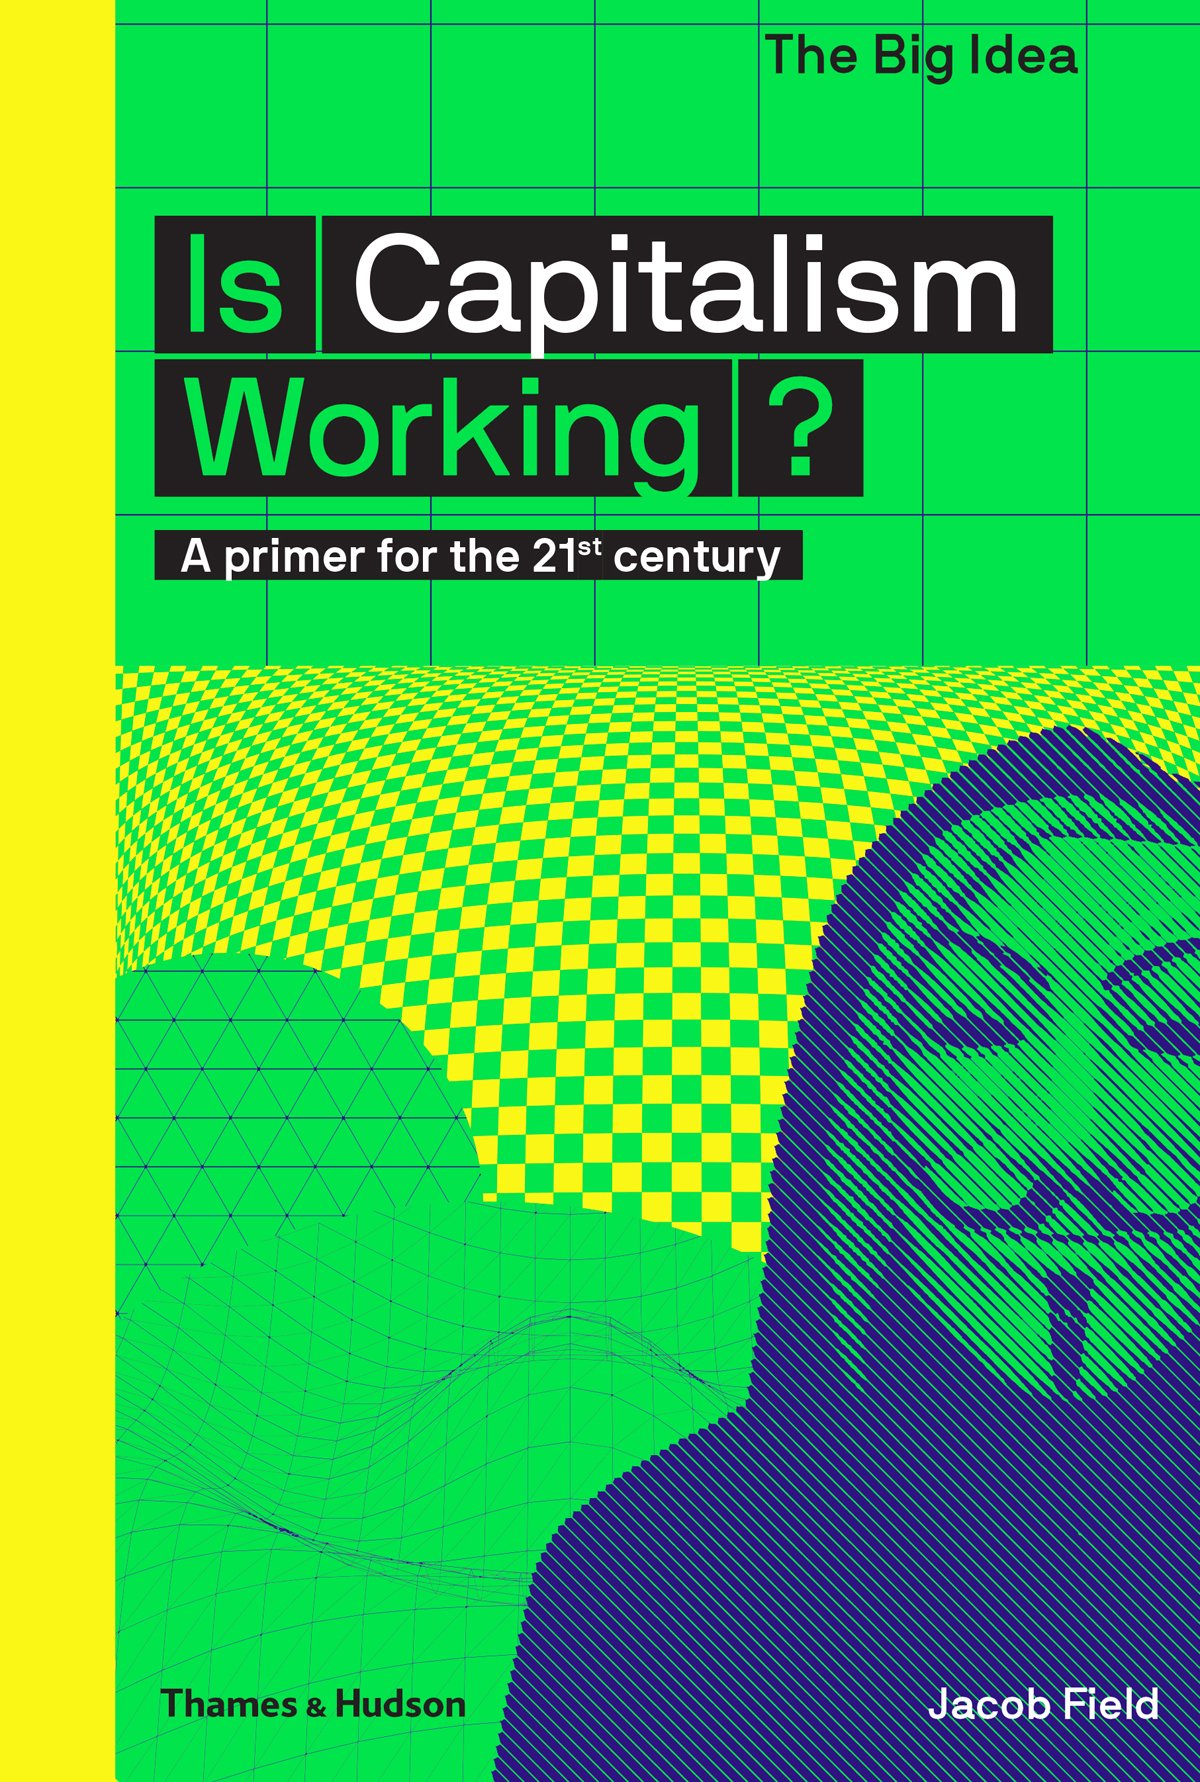 Is Capitalism Working? thumbnail